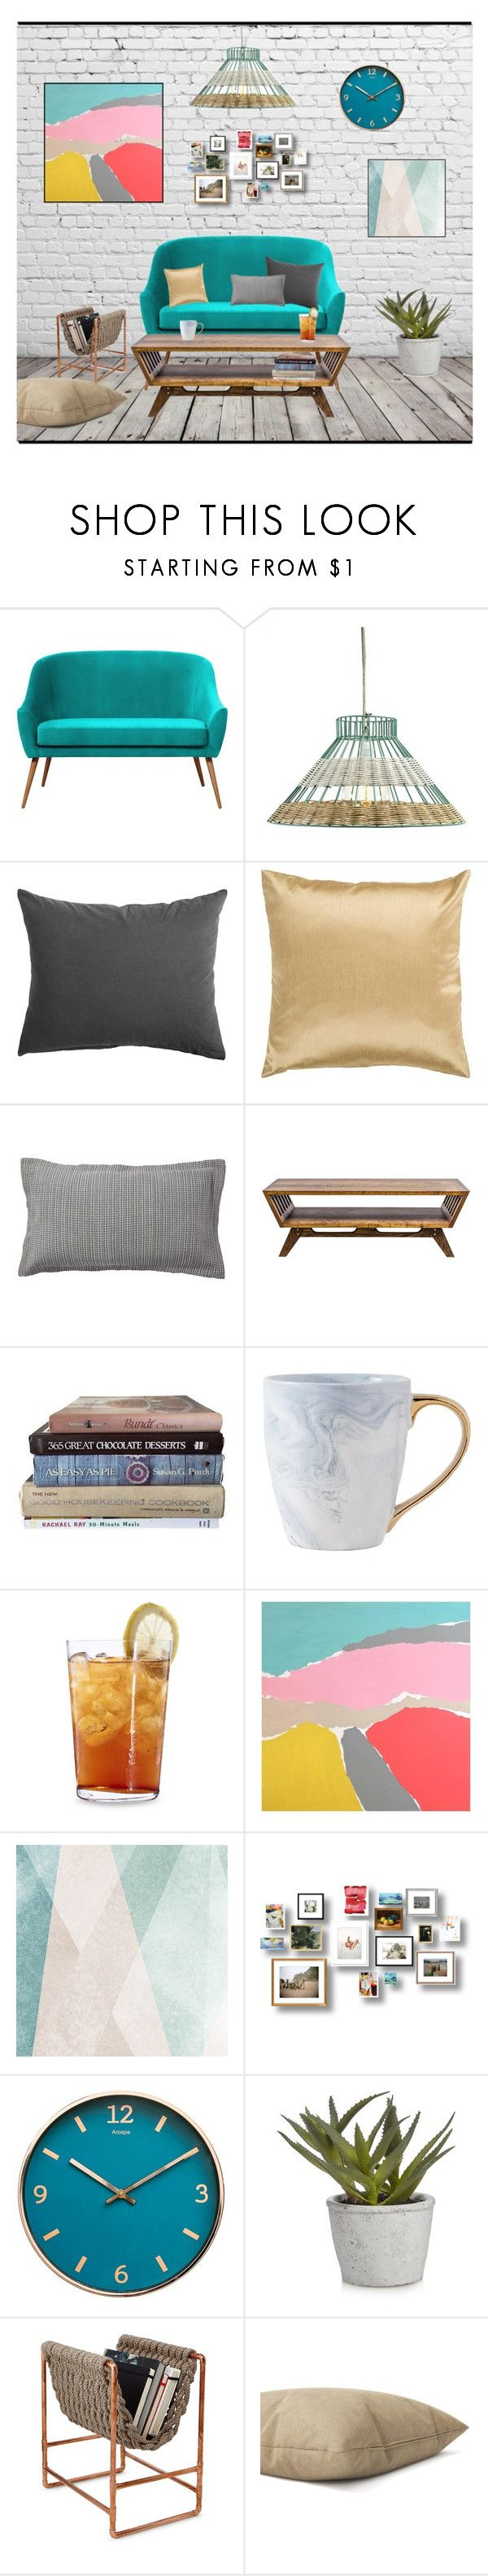 """""""Untitled #214"""" by elenh-tata ❤ liked on Polyvore featuring interior, interiors, interior design, home, home decor, interior decorating, Holly's House, Surya, Pottery Barn and MODERNCRE8VE"""